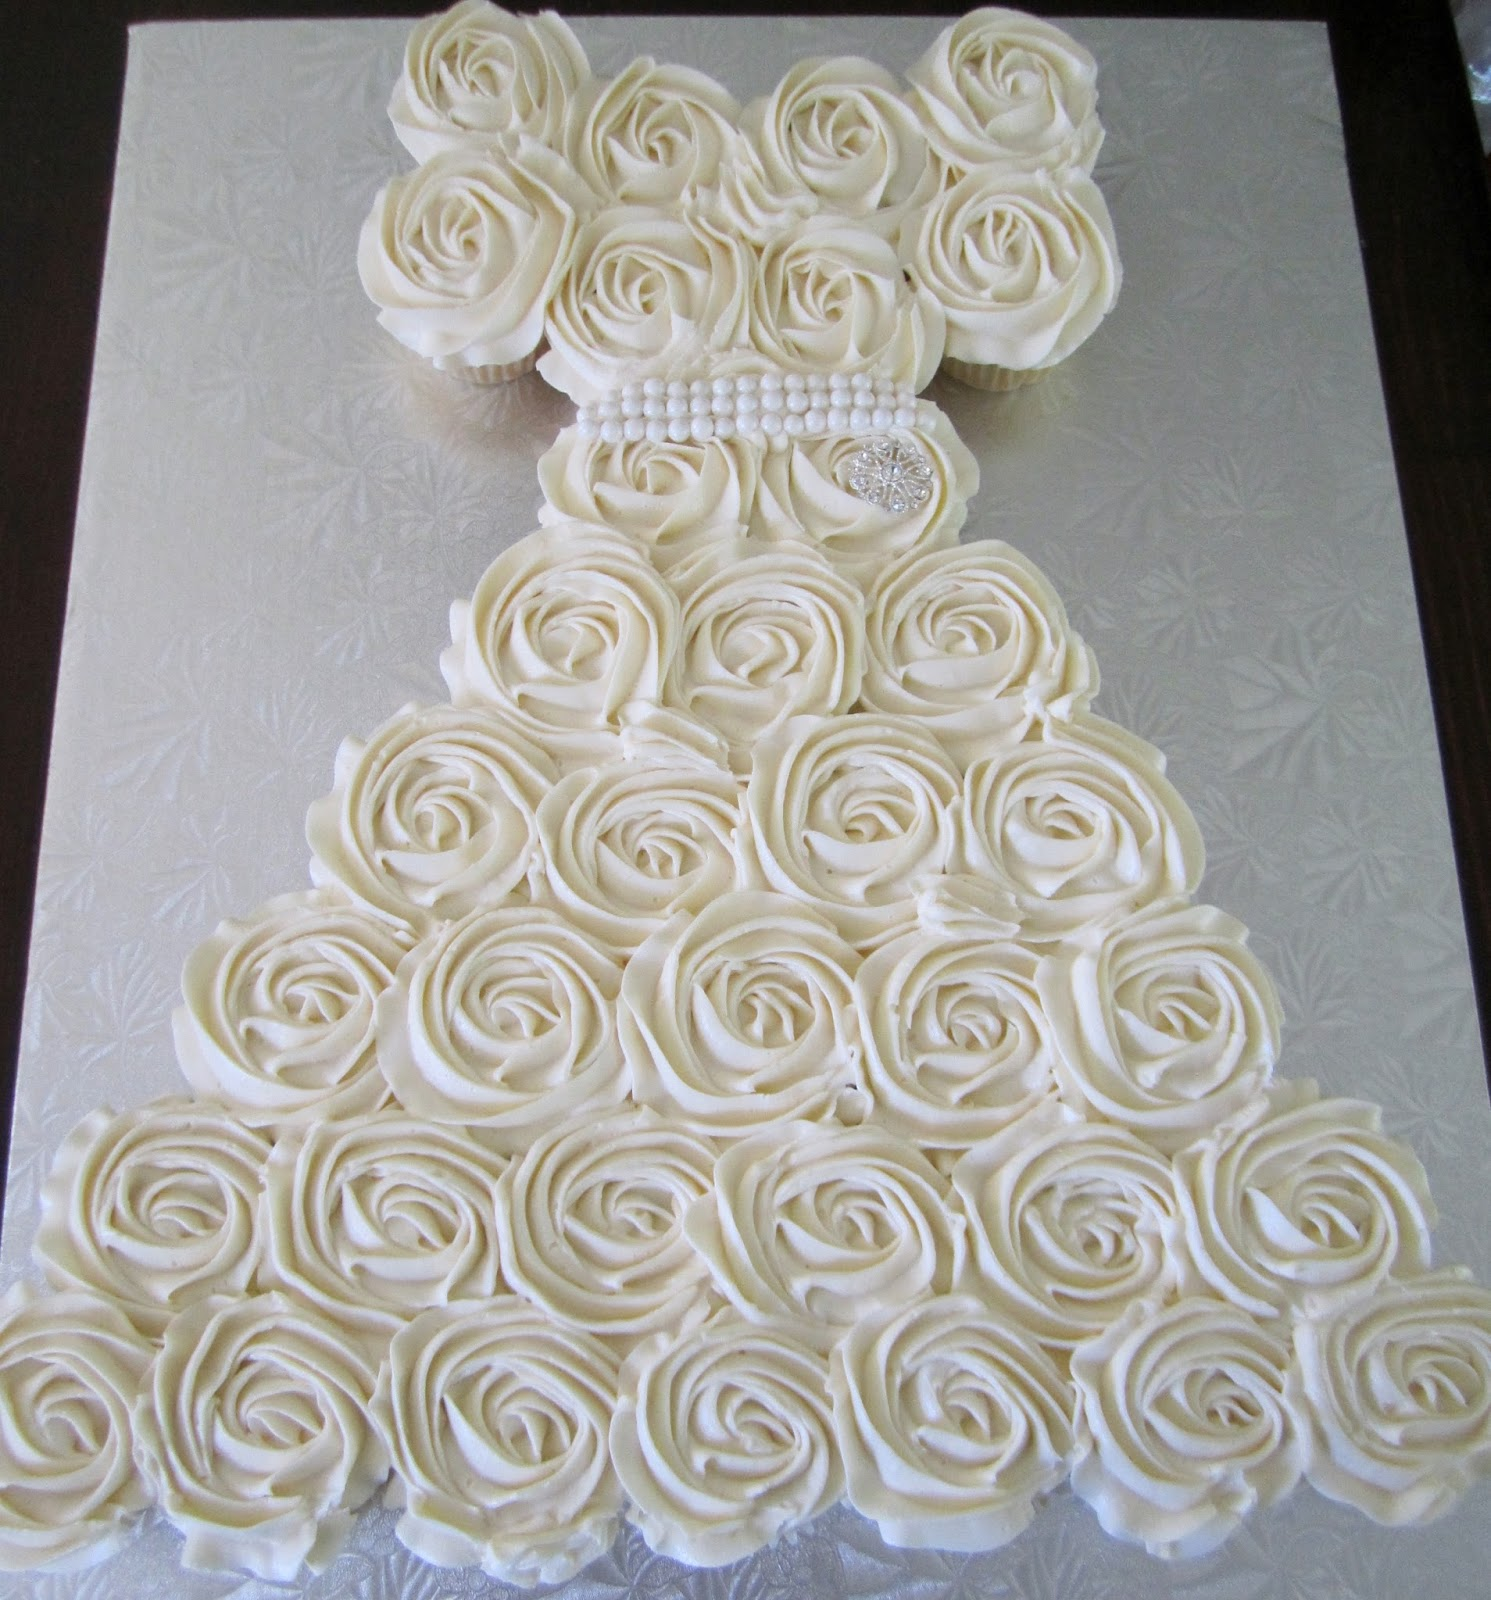 cakesor something like that: bridal shower cupcake wedding